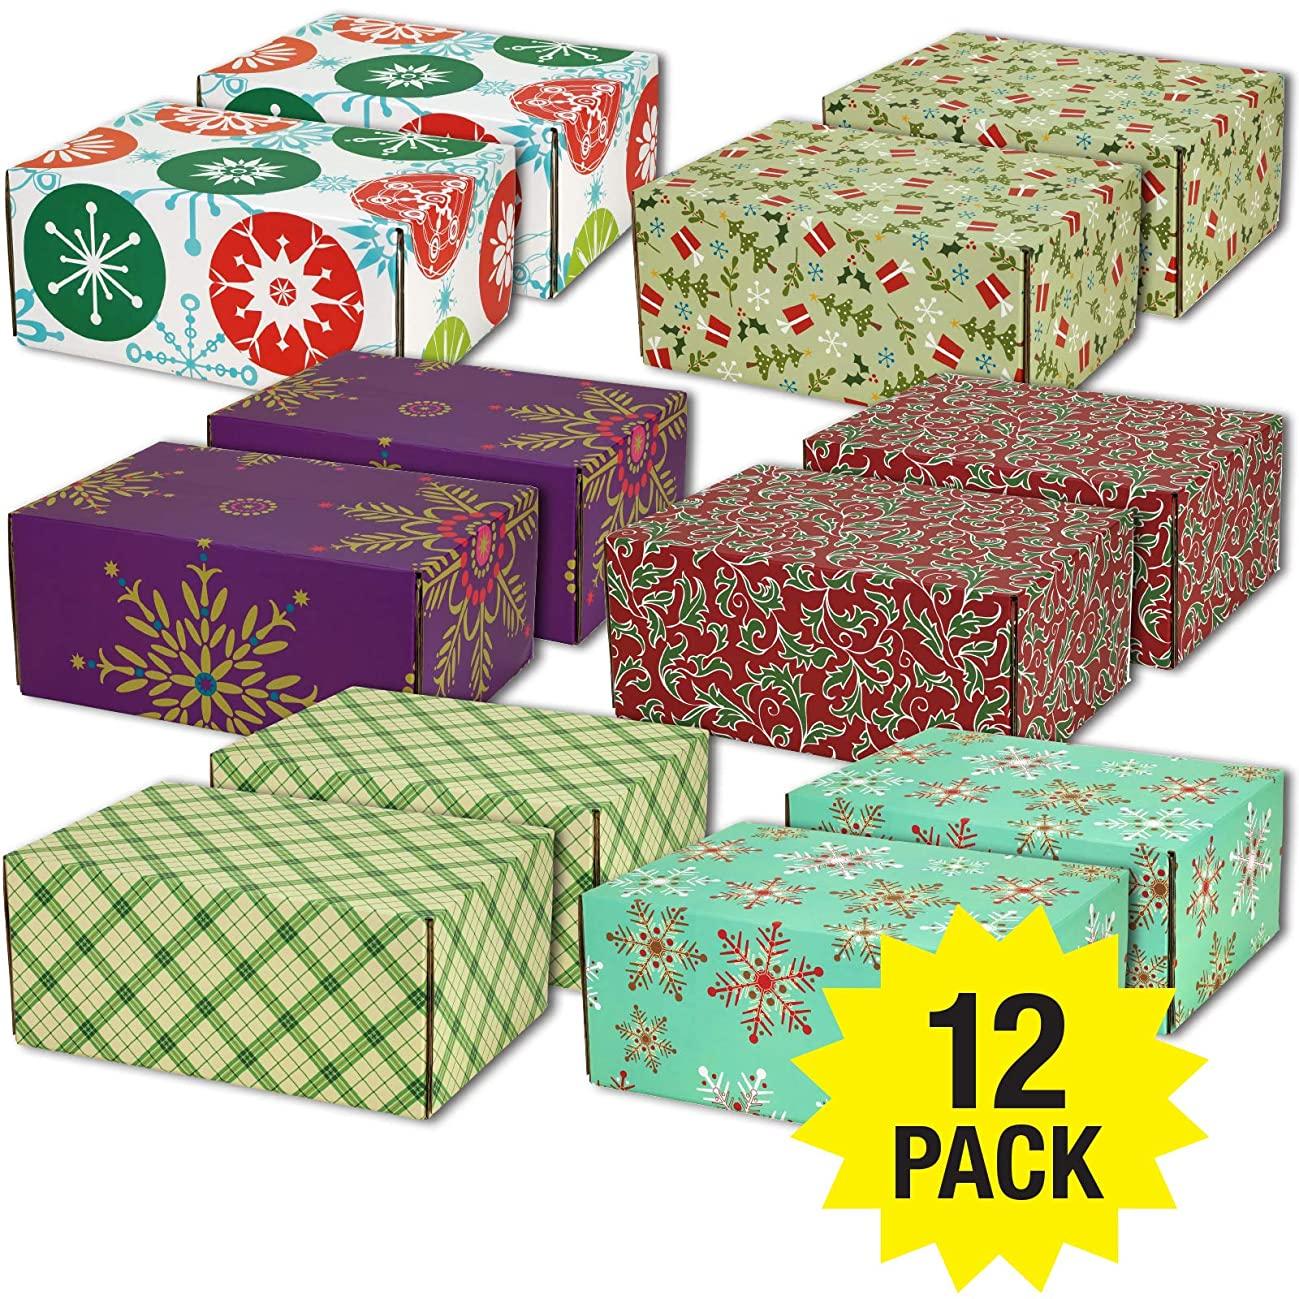 Gift Shipping Boxes (Pack of 12, Holiday Patterns, Medium)